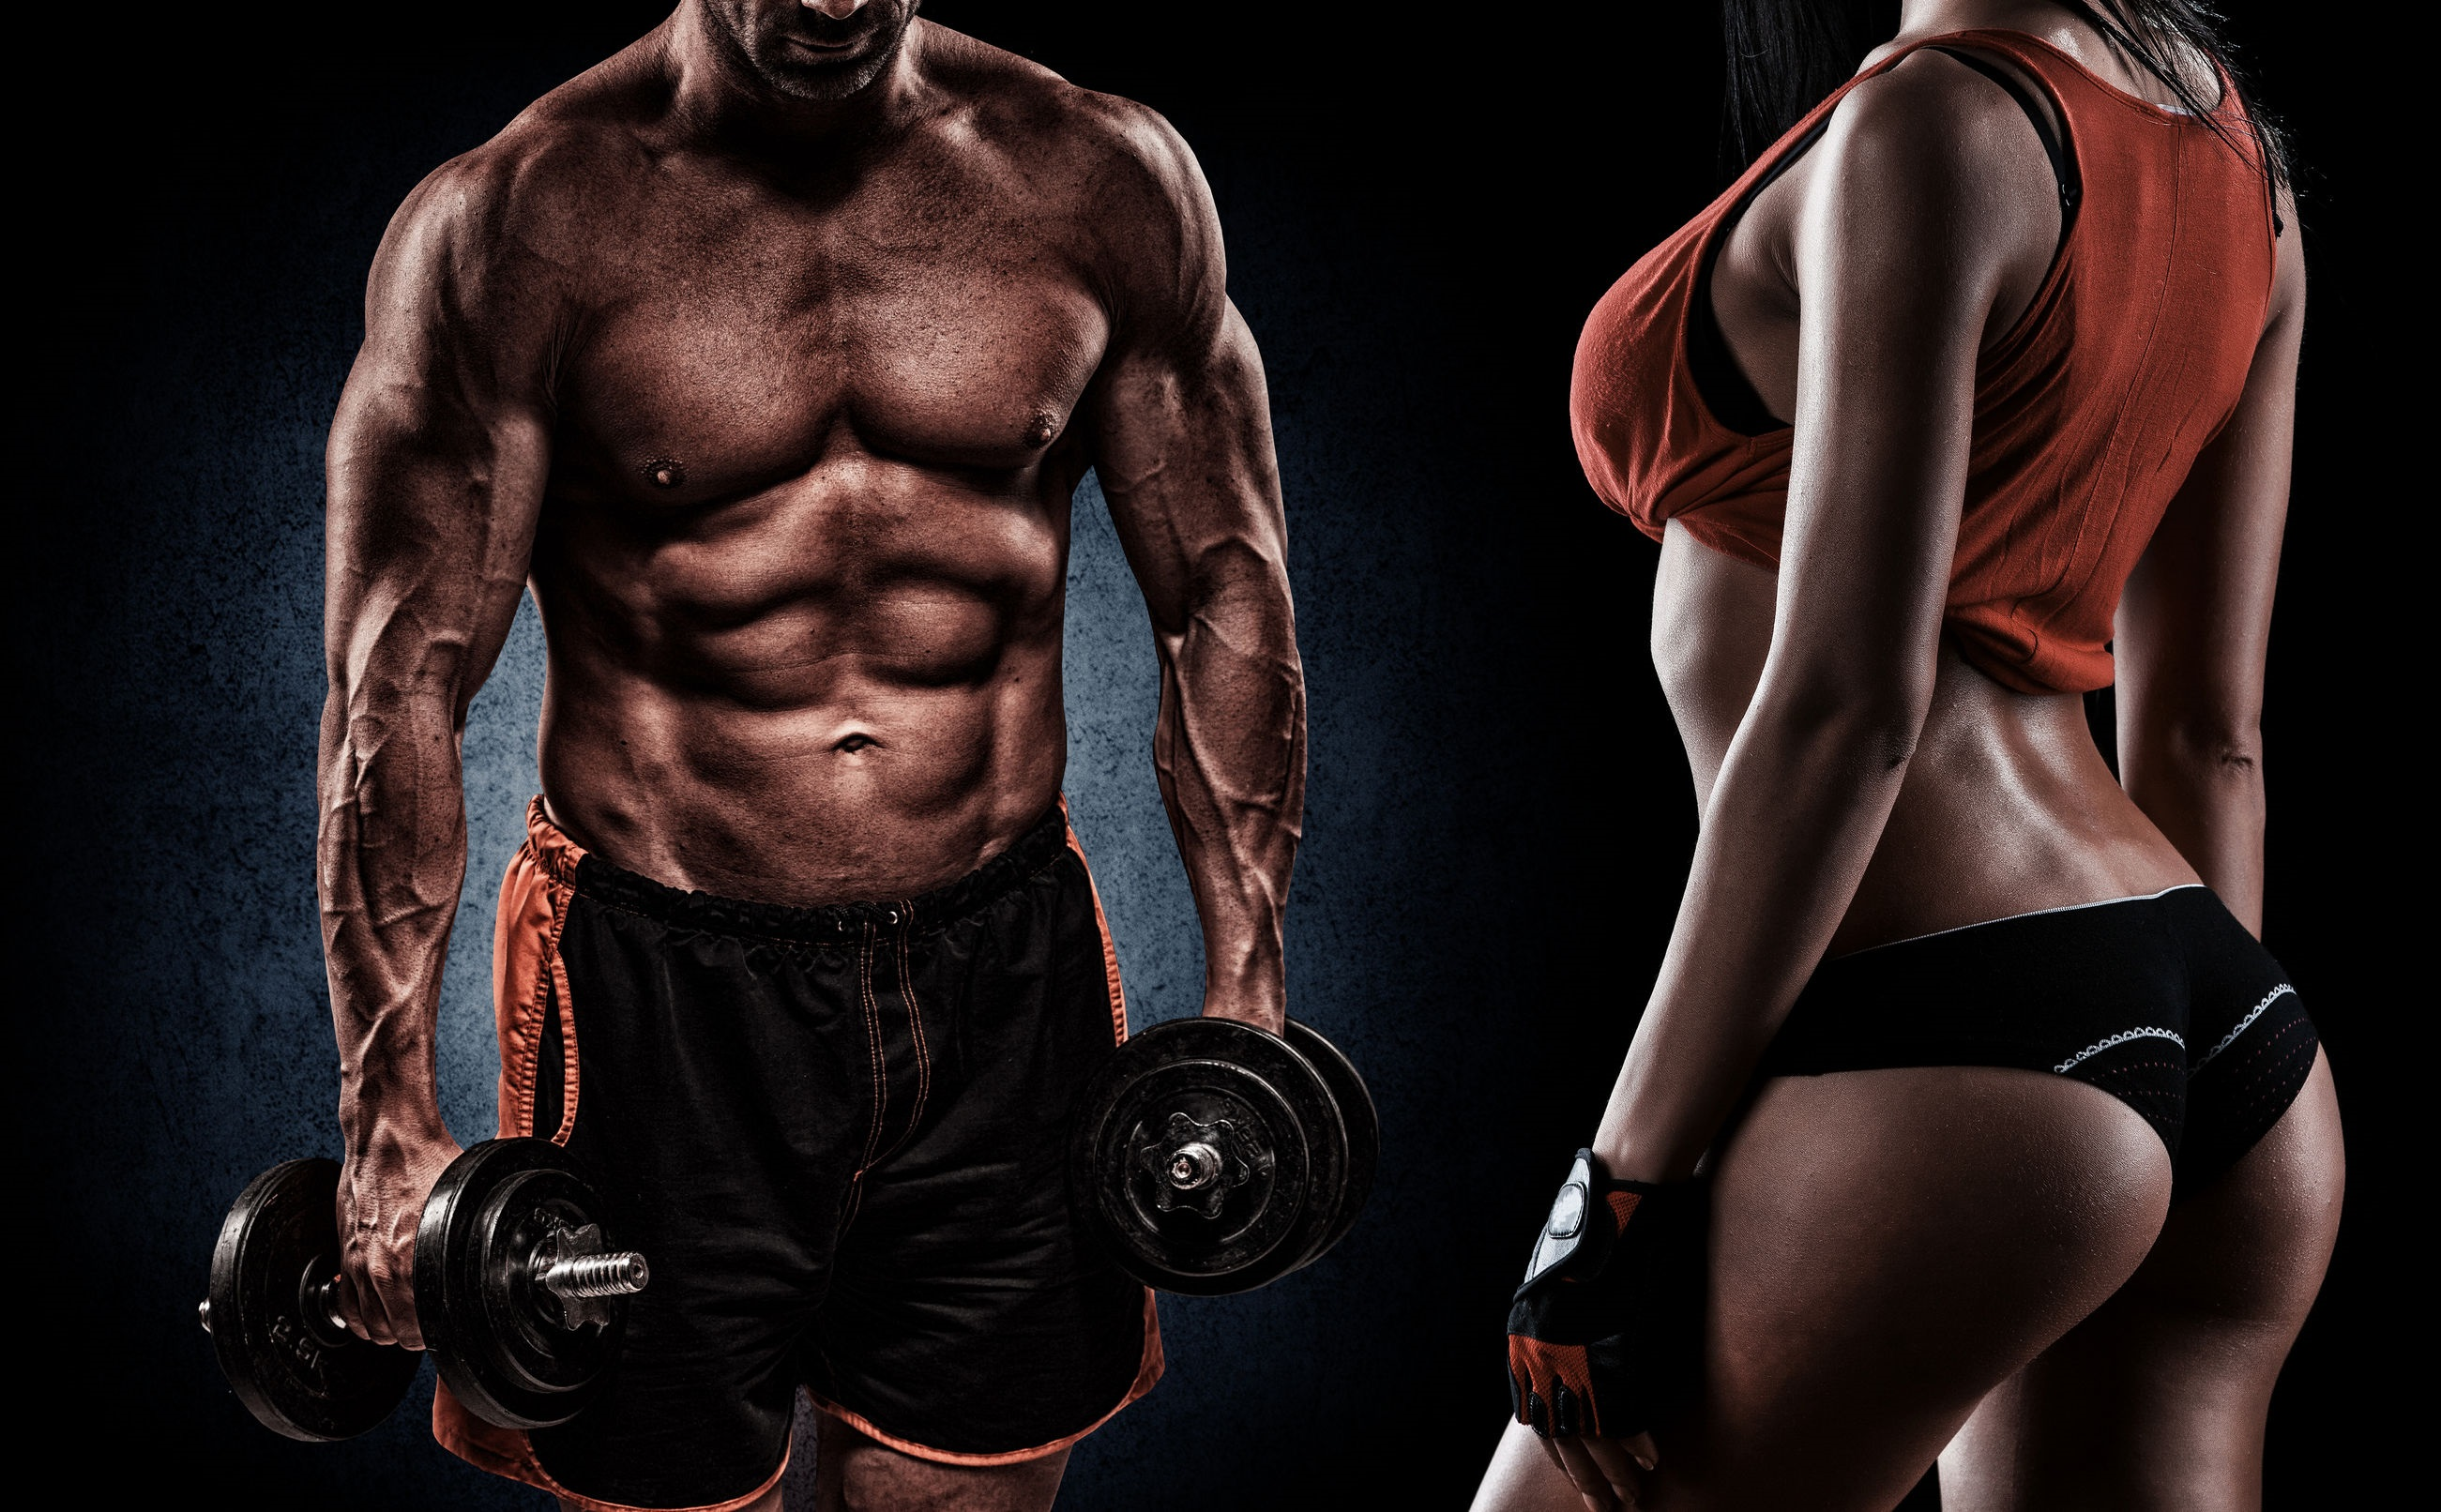 What Peptides Do Bodybuilders Use and What Are their Benefits?